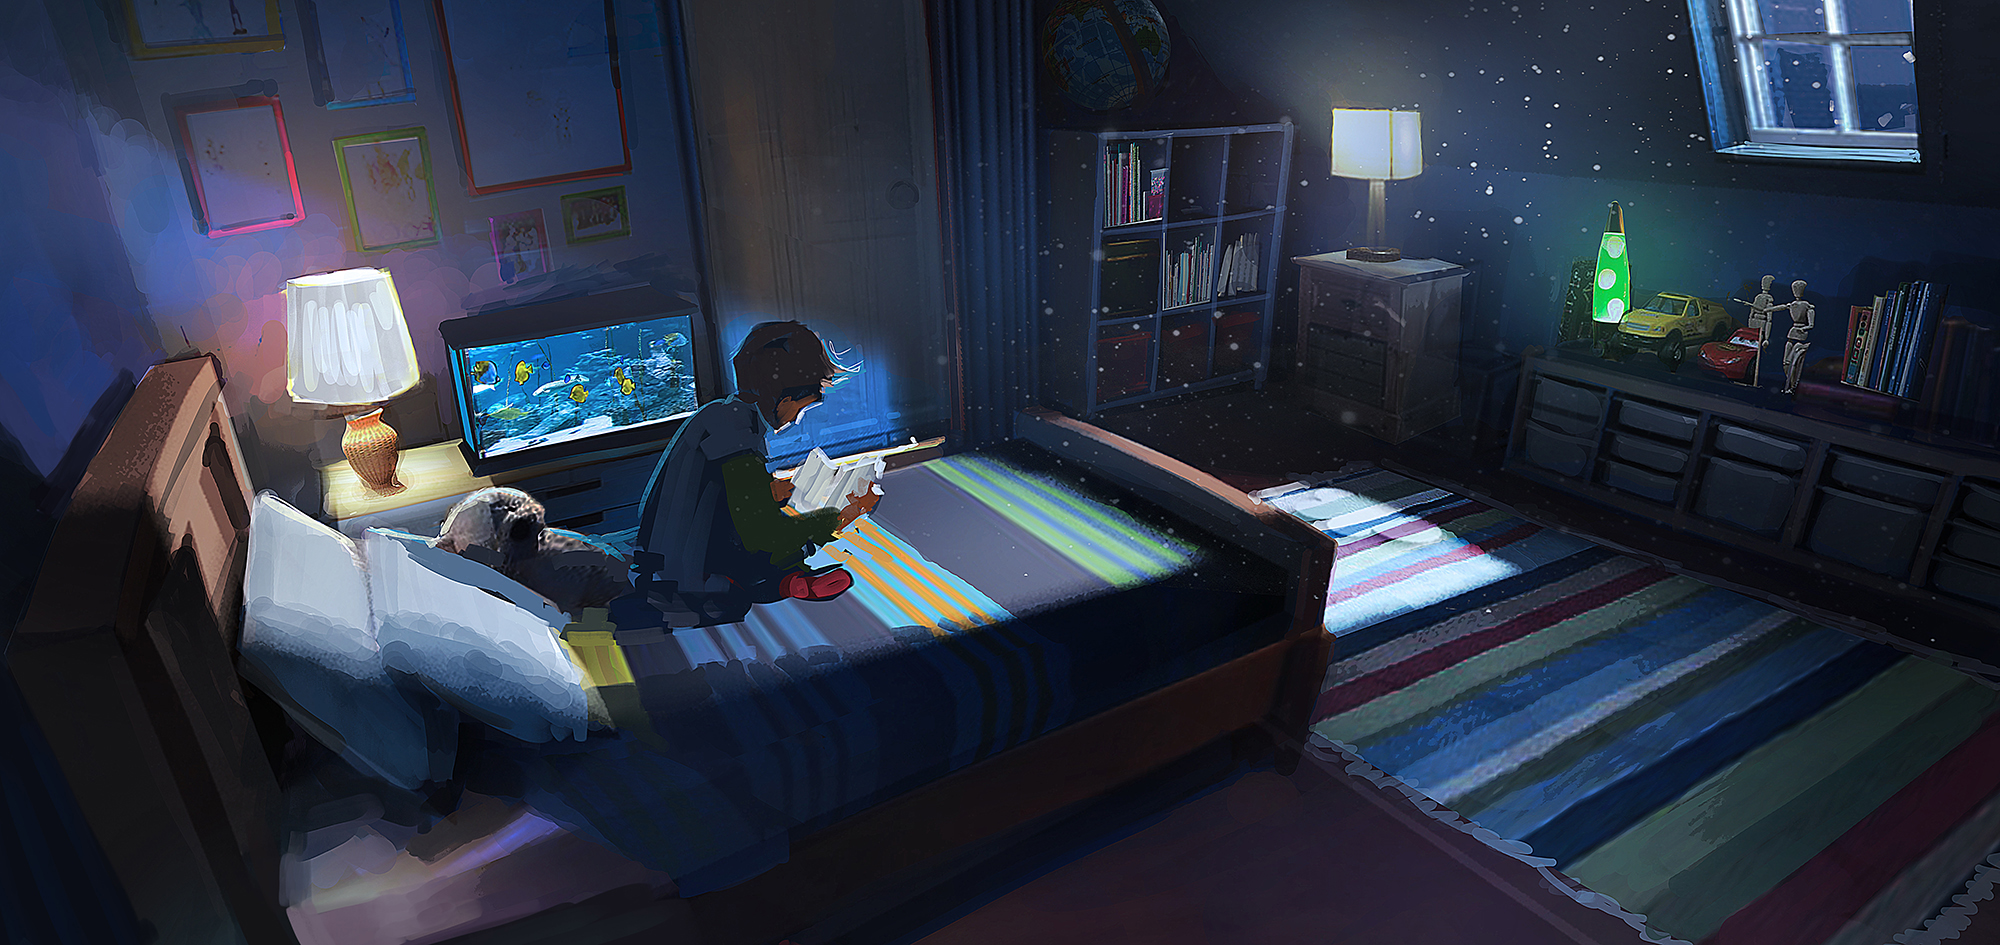 Night Room By Rhysgriffiths On Deviantart